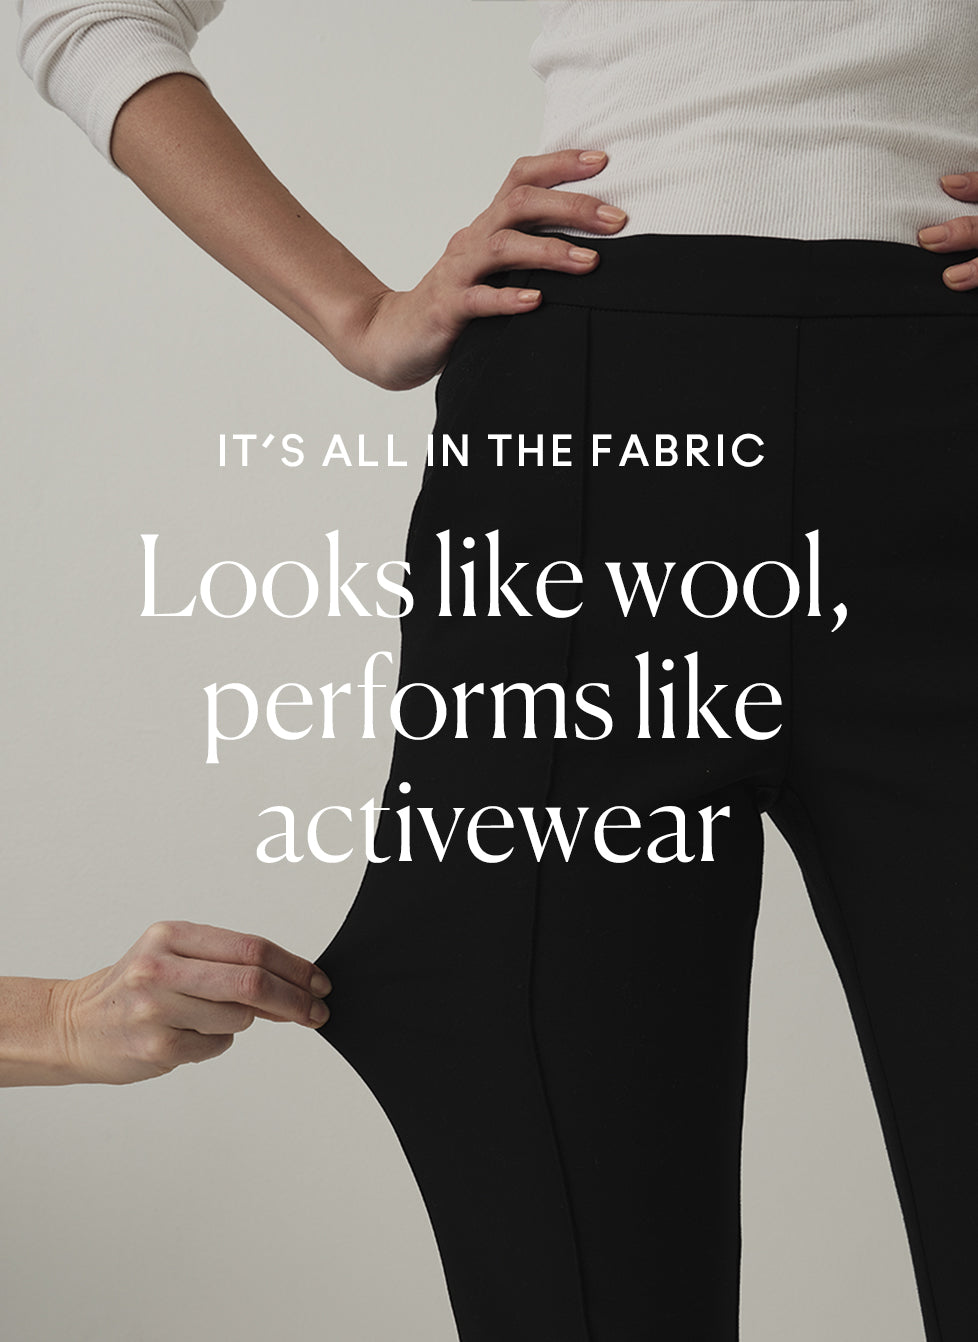 It's all in the fabric